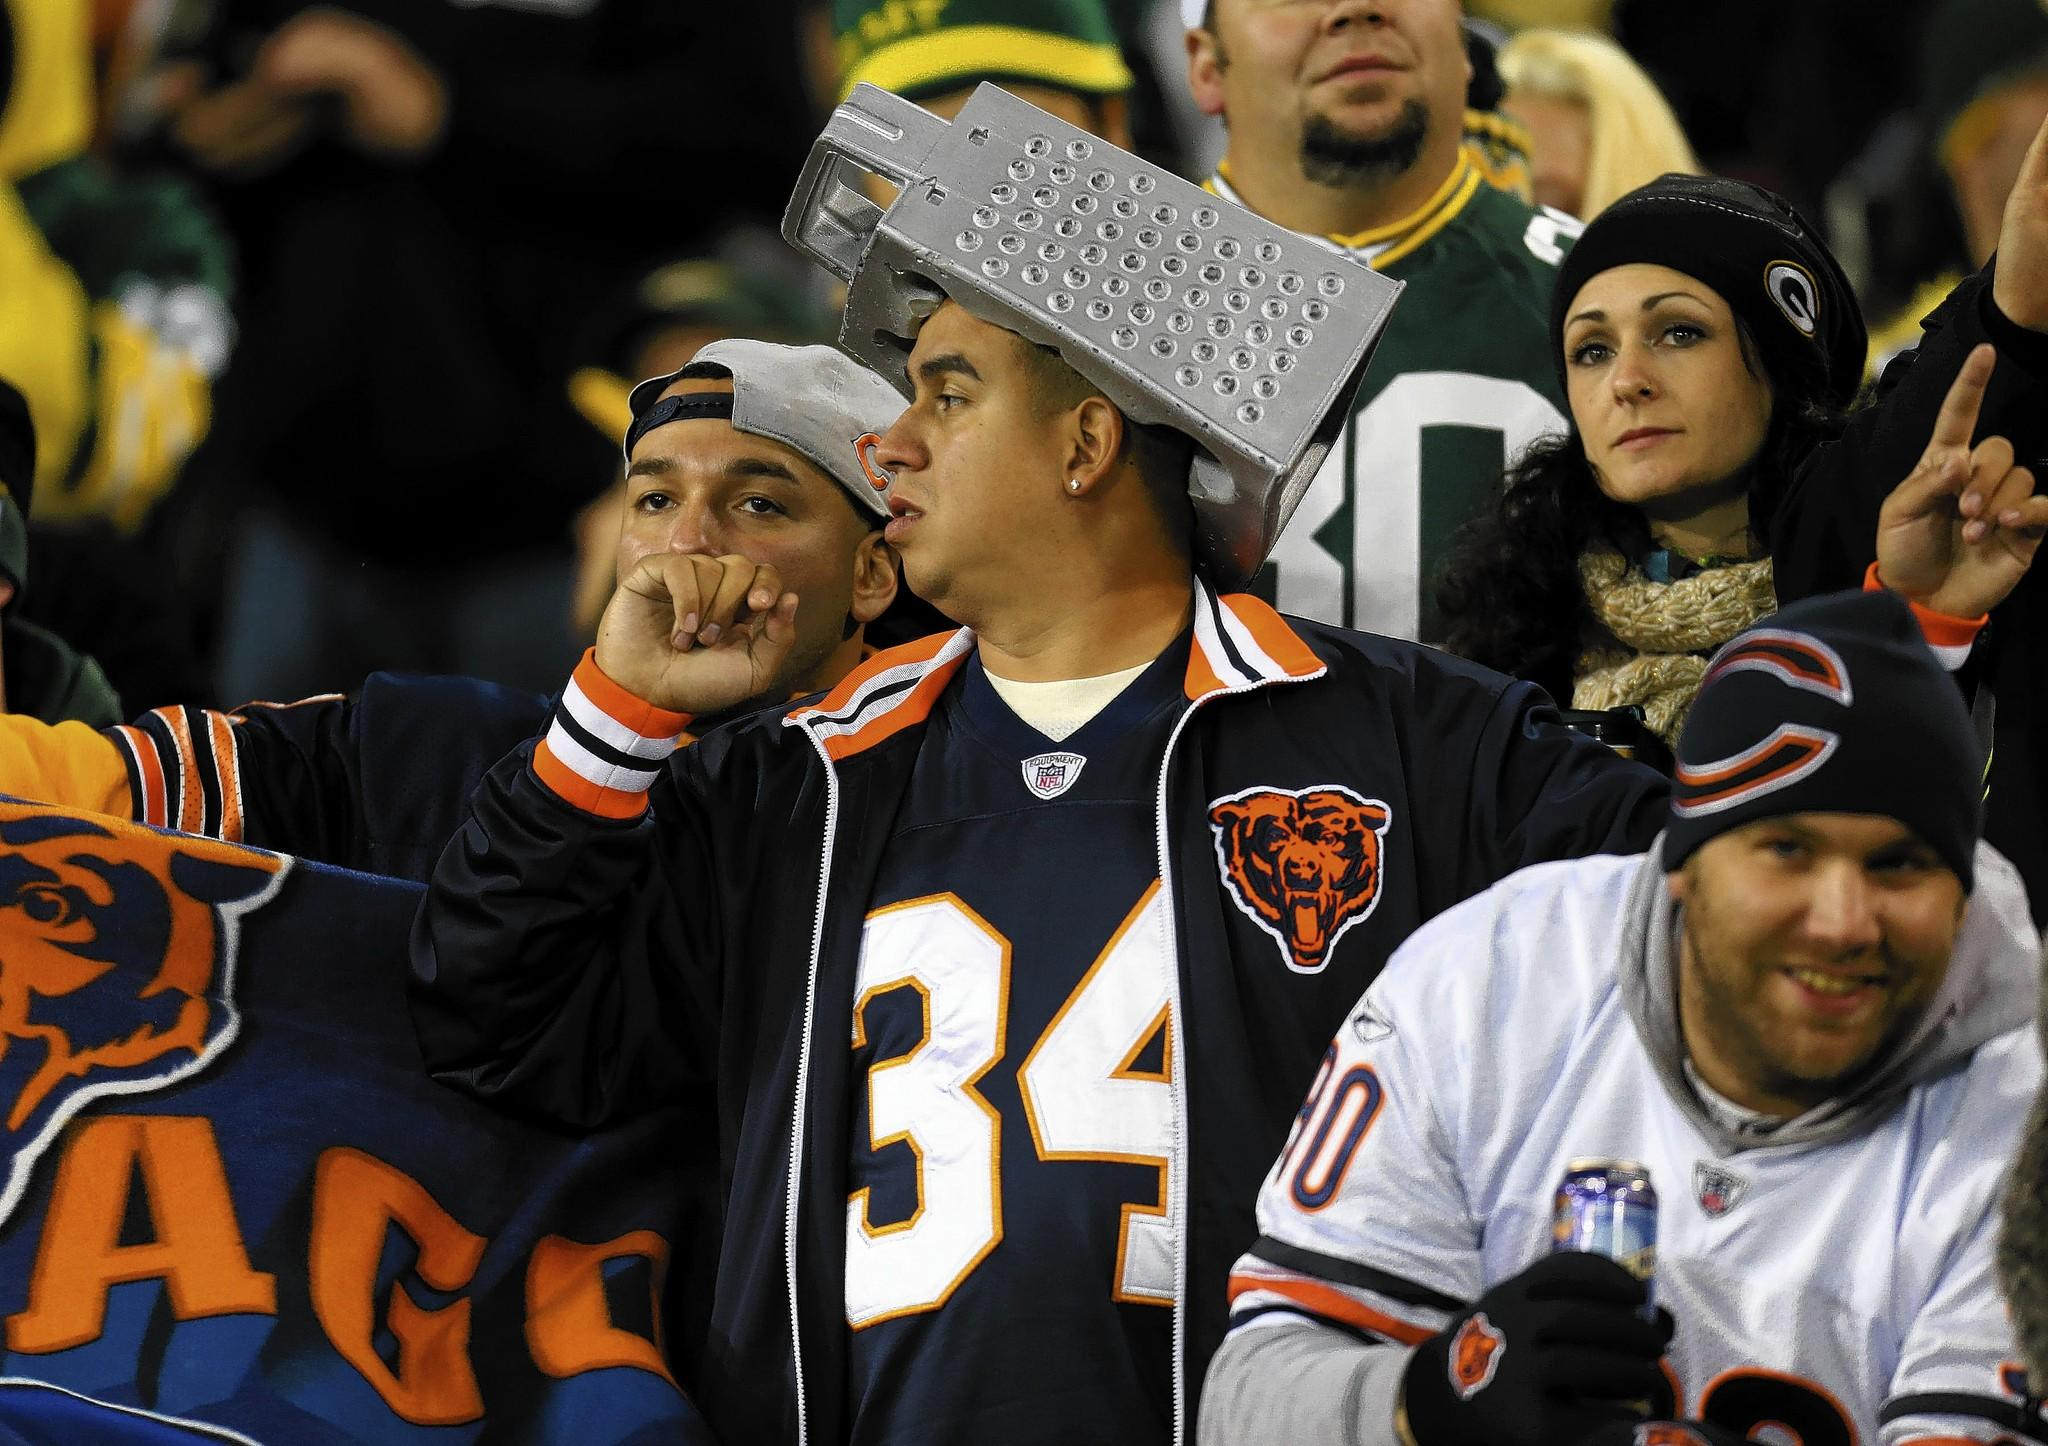 A Chicago Bears fan sports a Graterhead hat at Lambeau Field in Green Bay, Wis., in early November.